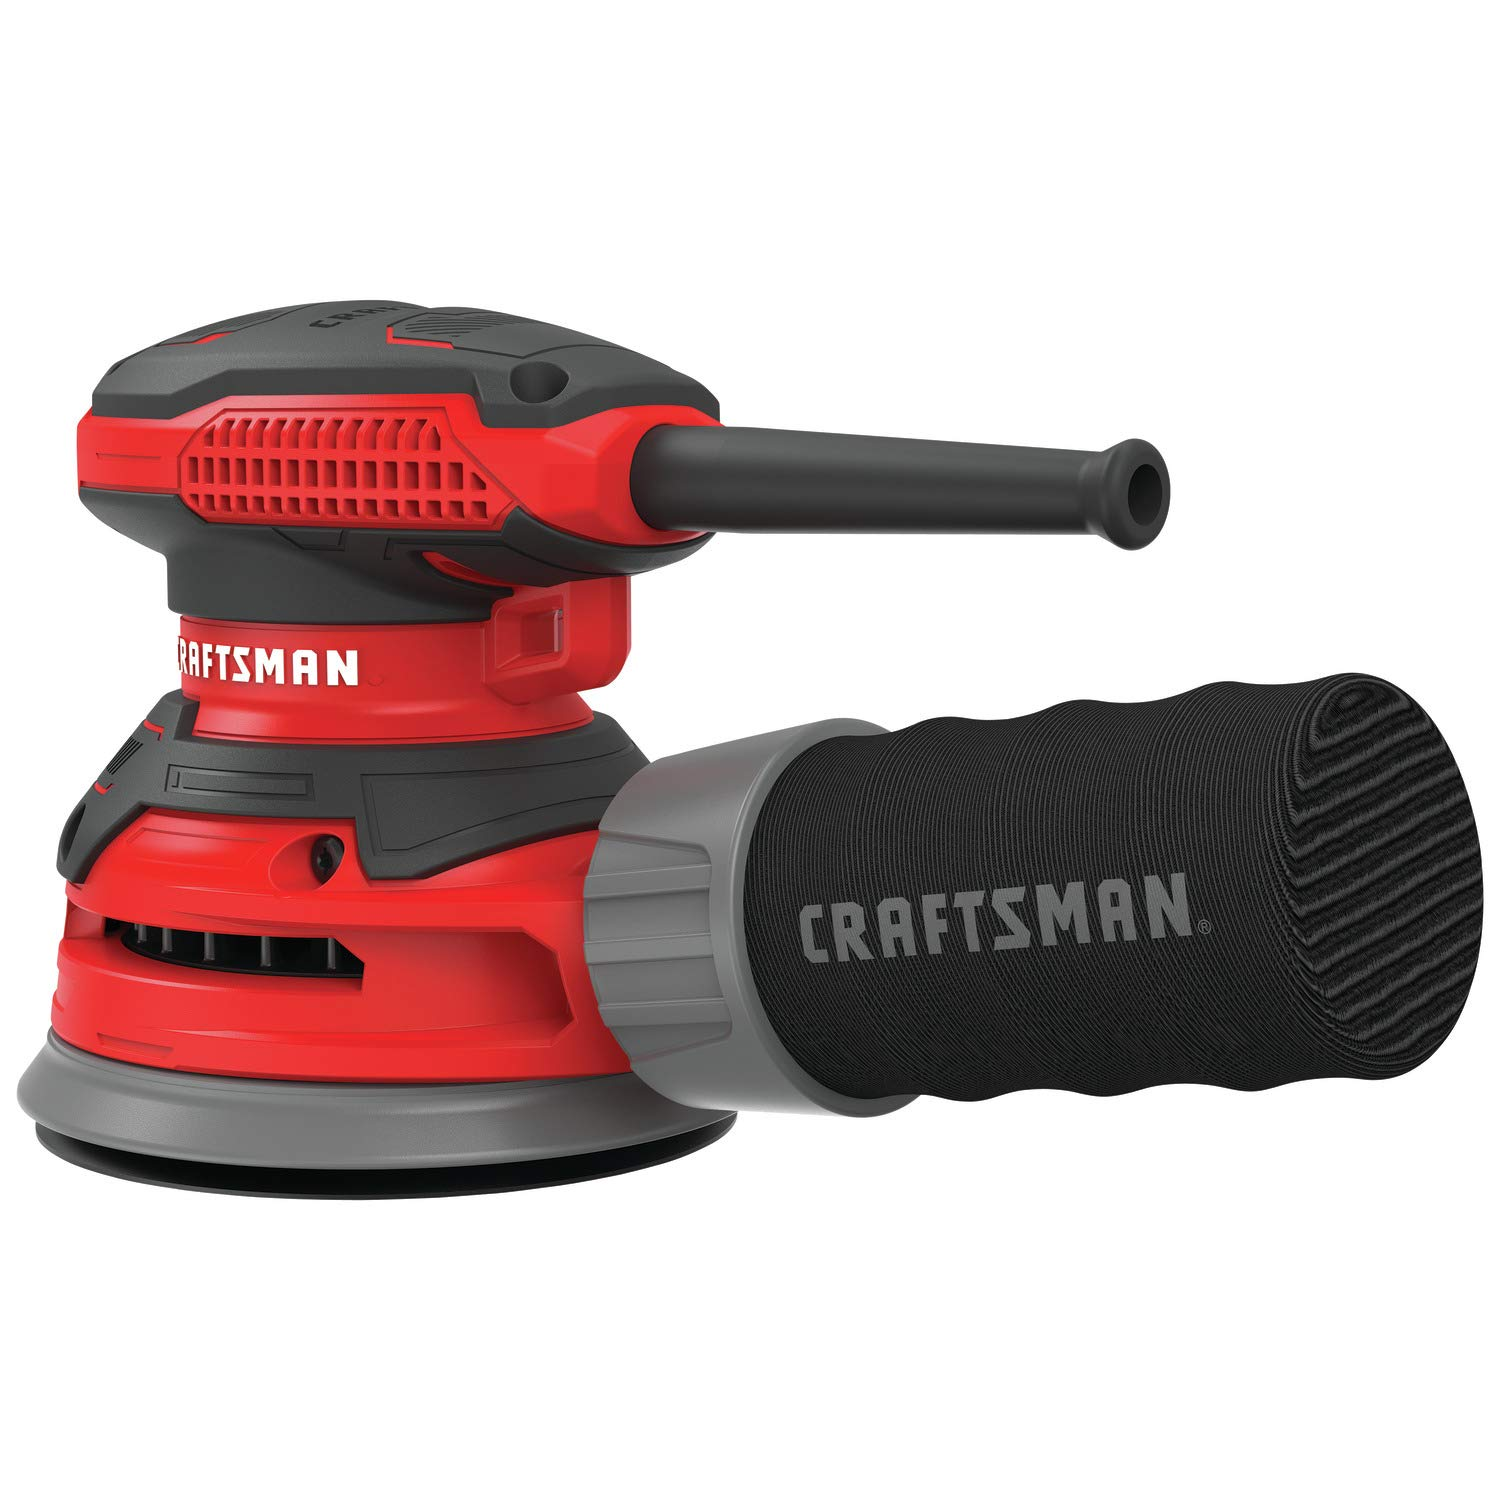 Craftsman CMEW231 featured image 5